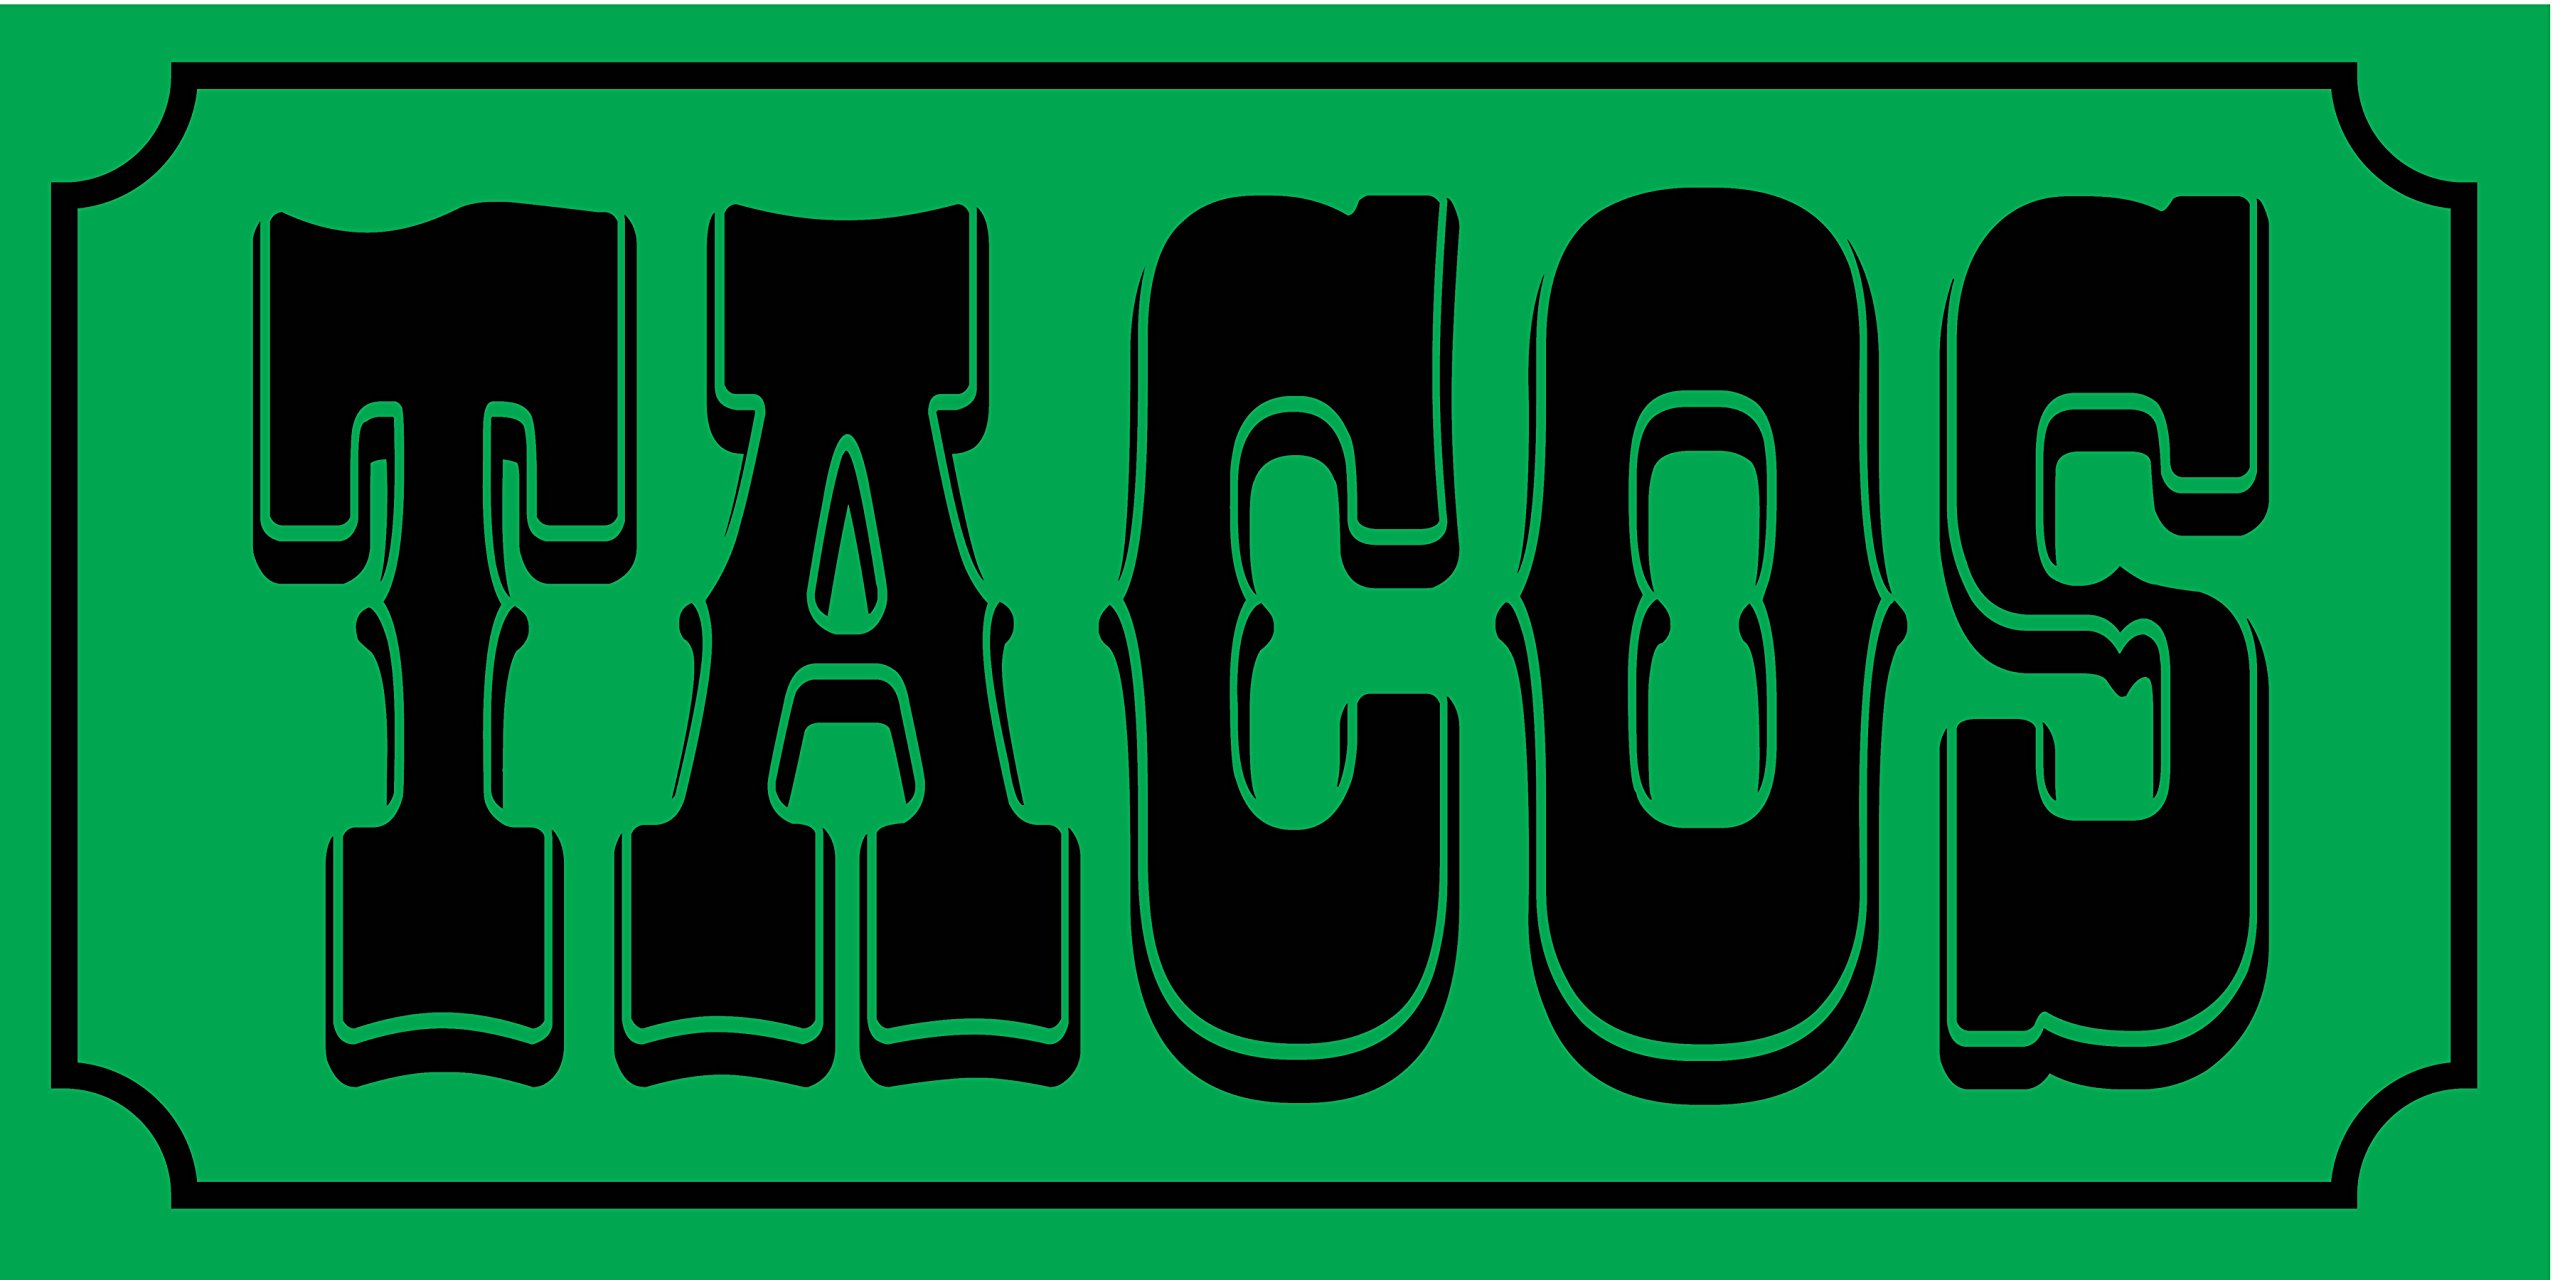 Pre-Printed Tacos Banner - Solid - Green (10' x 5')